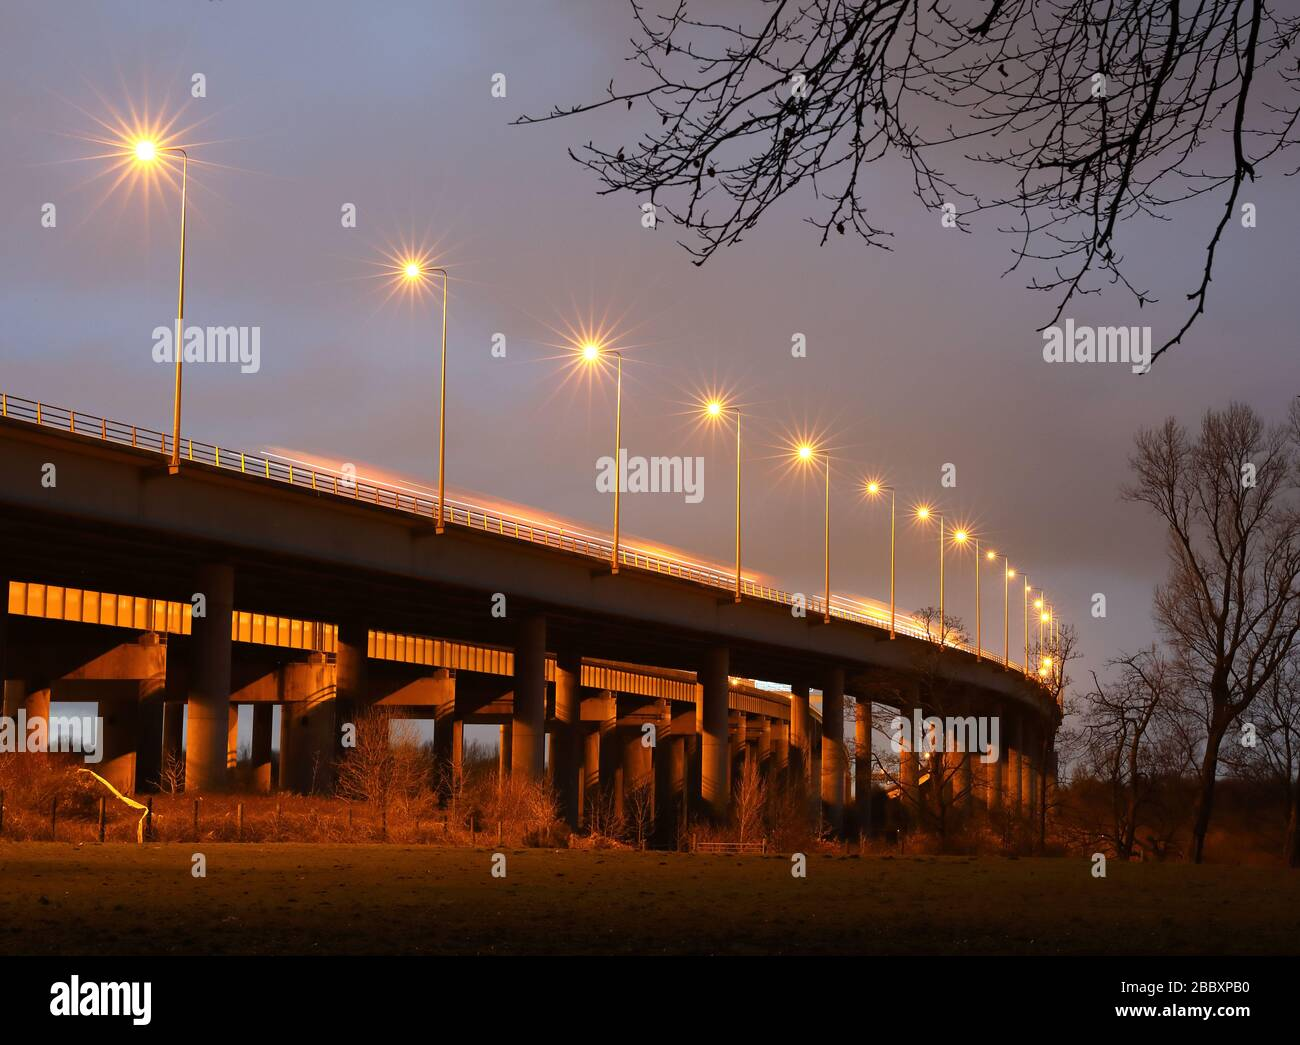 M6 Thelwall steel composite girder viaduct, Stock Photo